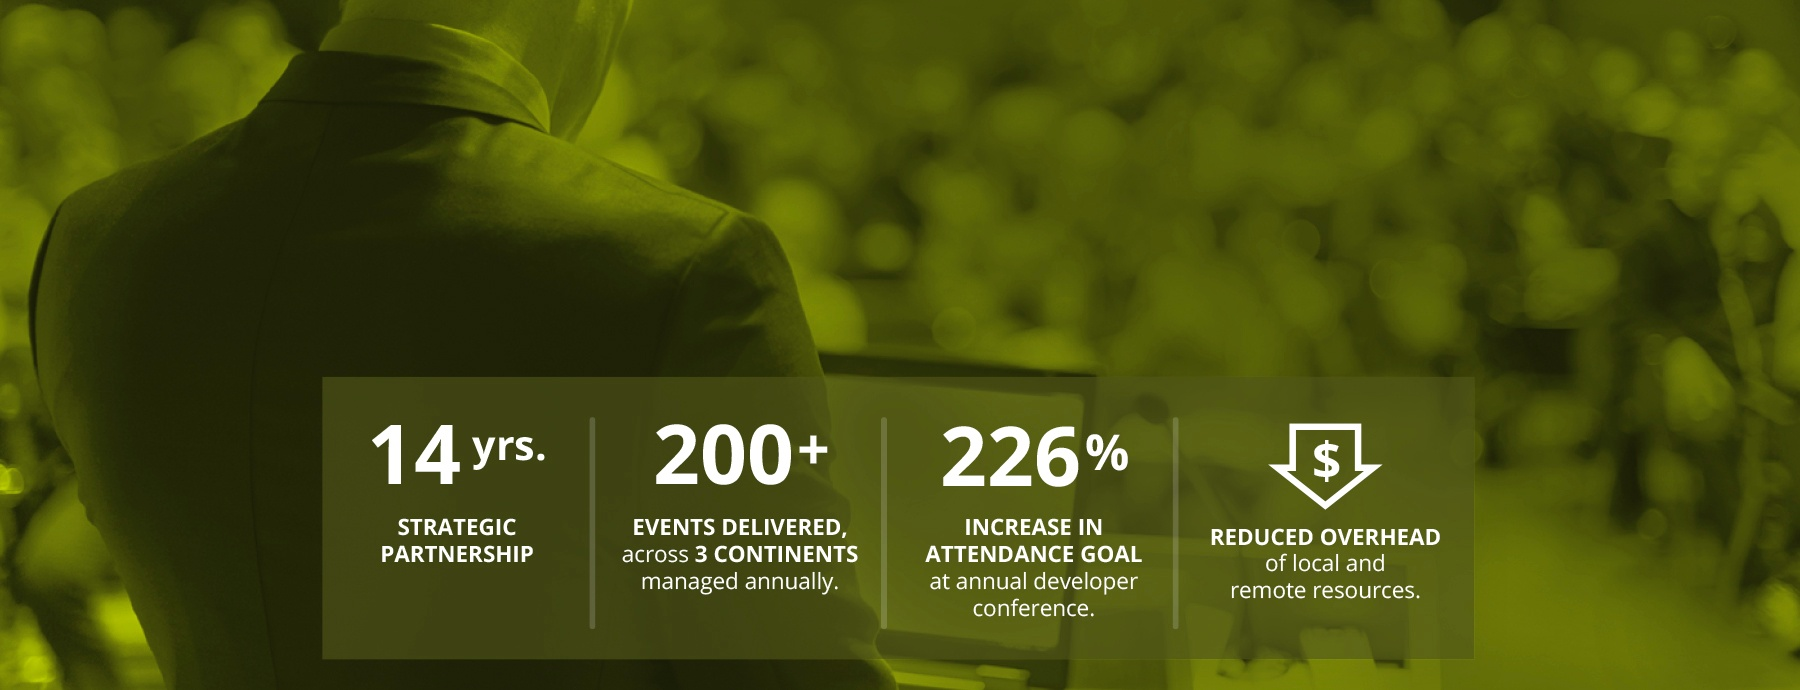 Case Study - Managed Marketing Services for Event Marketing